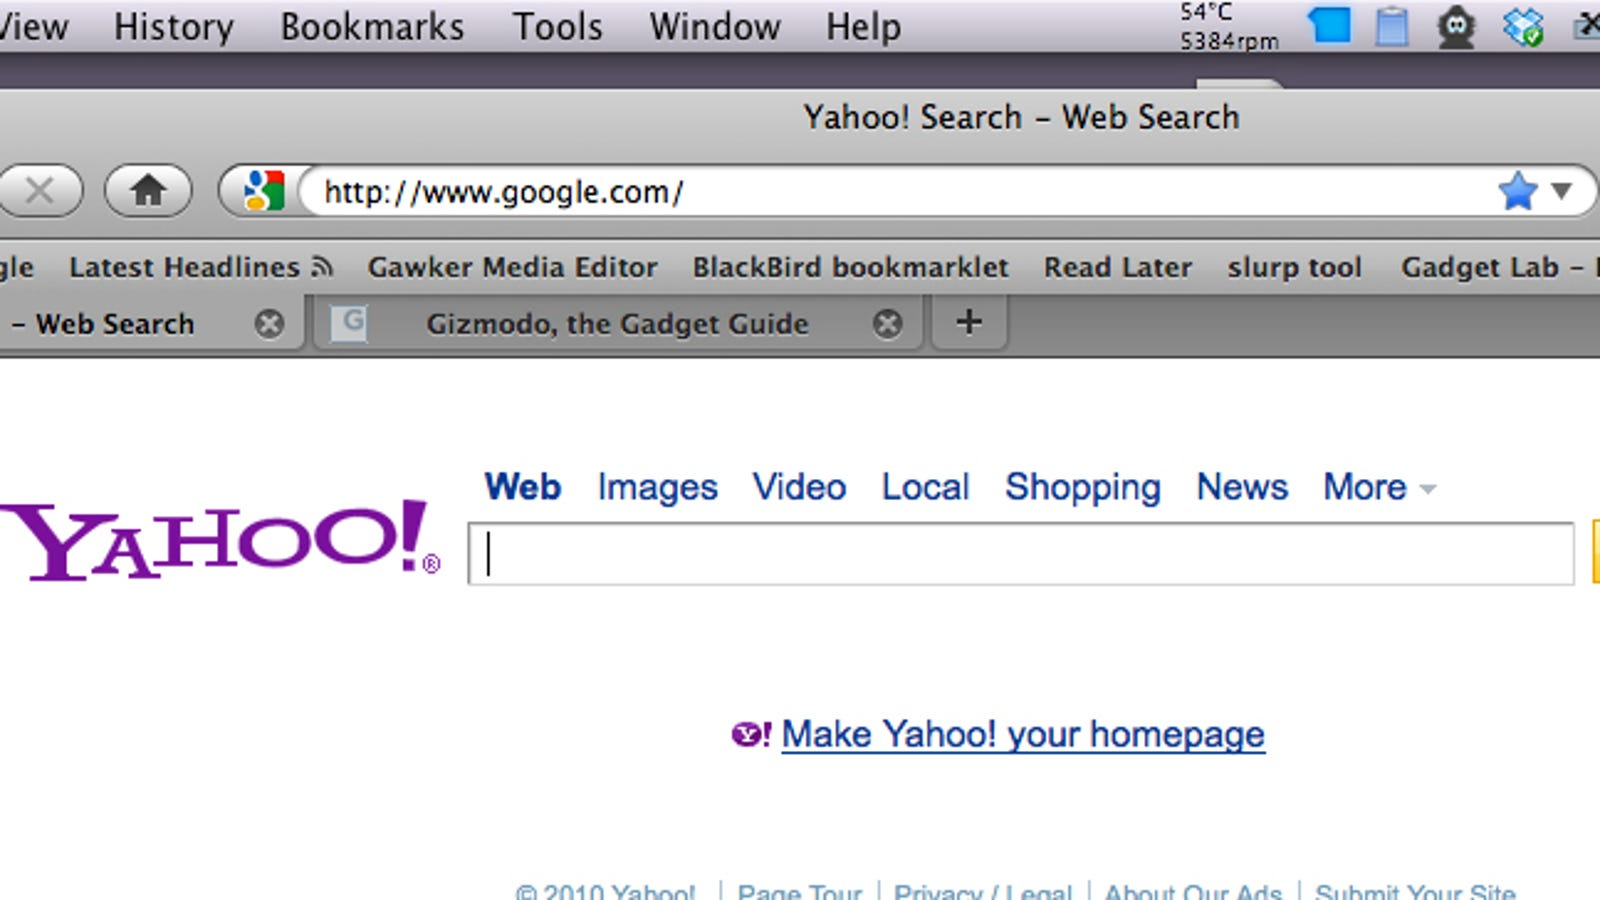 The Google Homepage Is Showing Me a Yahoo Search Box